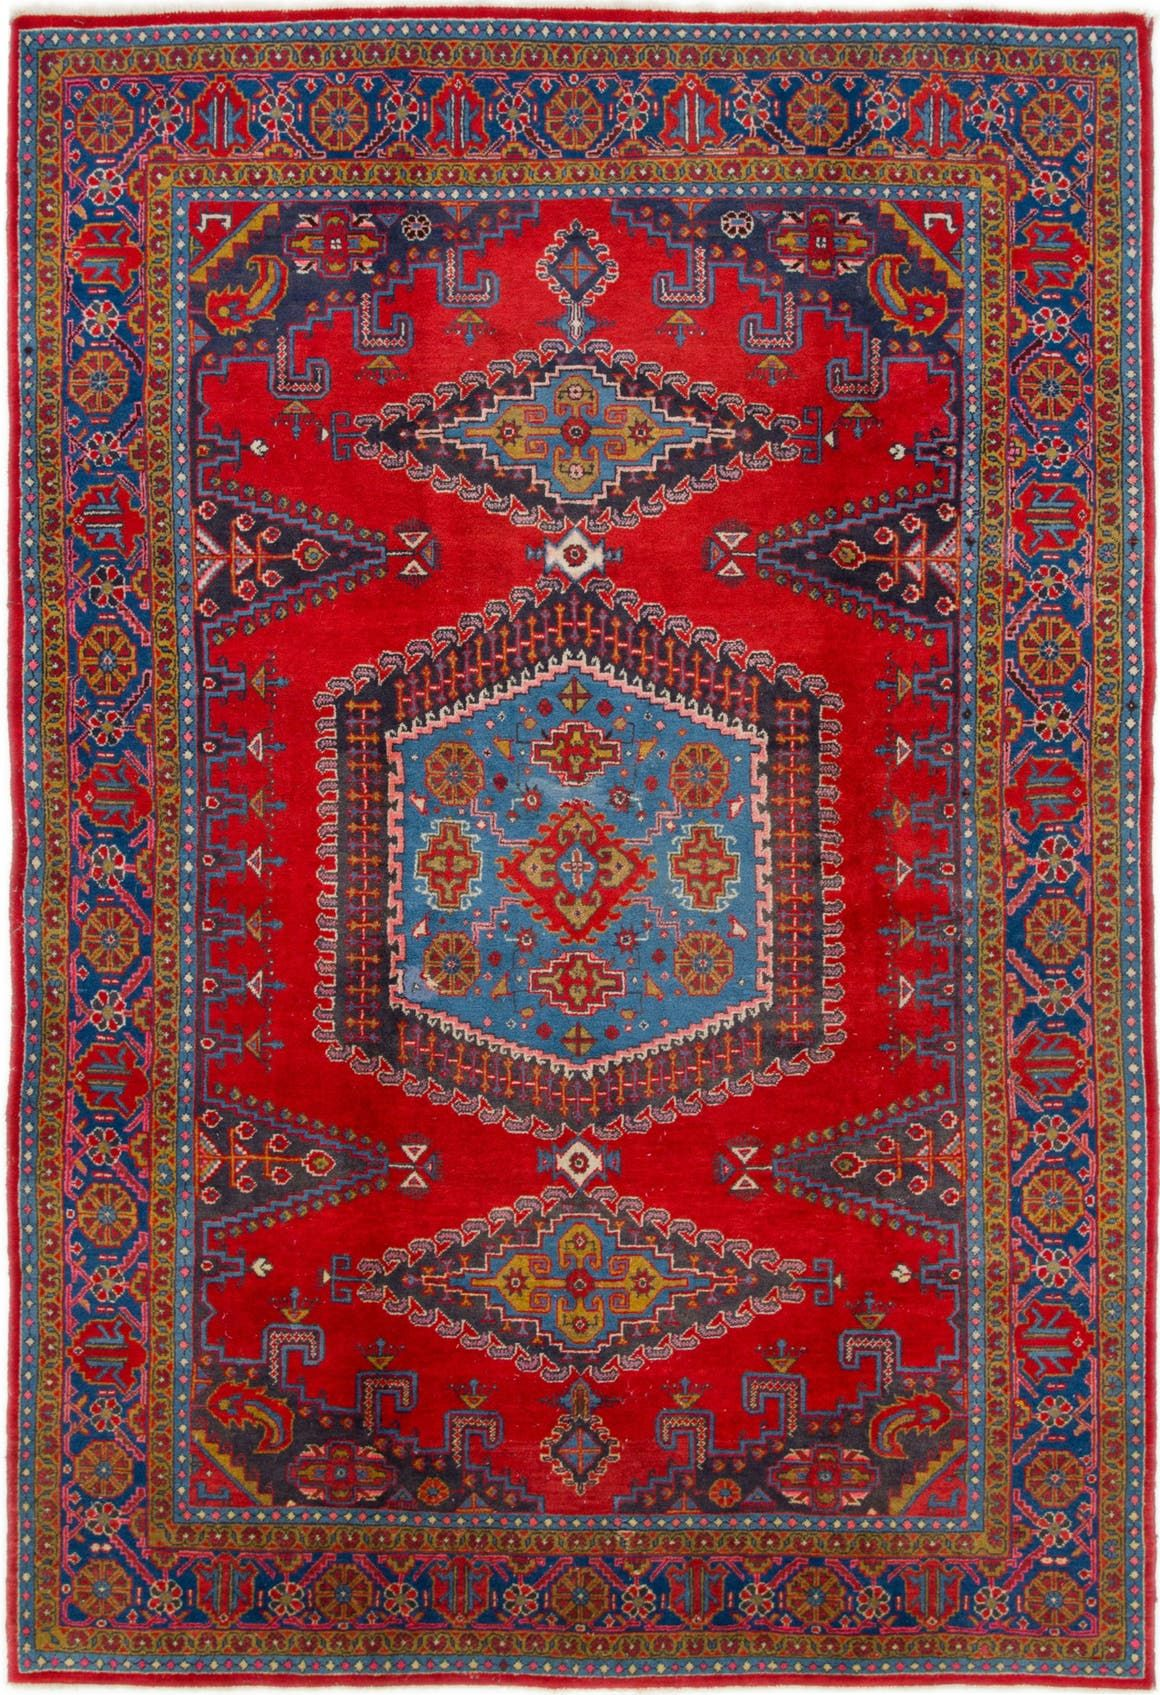 Viss Red Antique 8x11 Area Rug In 2020 Red Rugs Persian Rug Rugs On Carpet